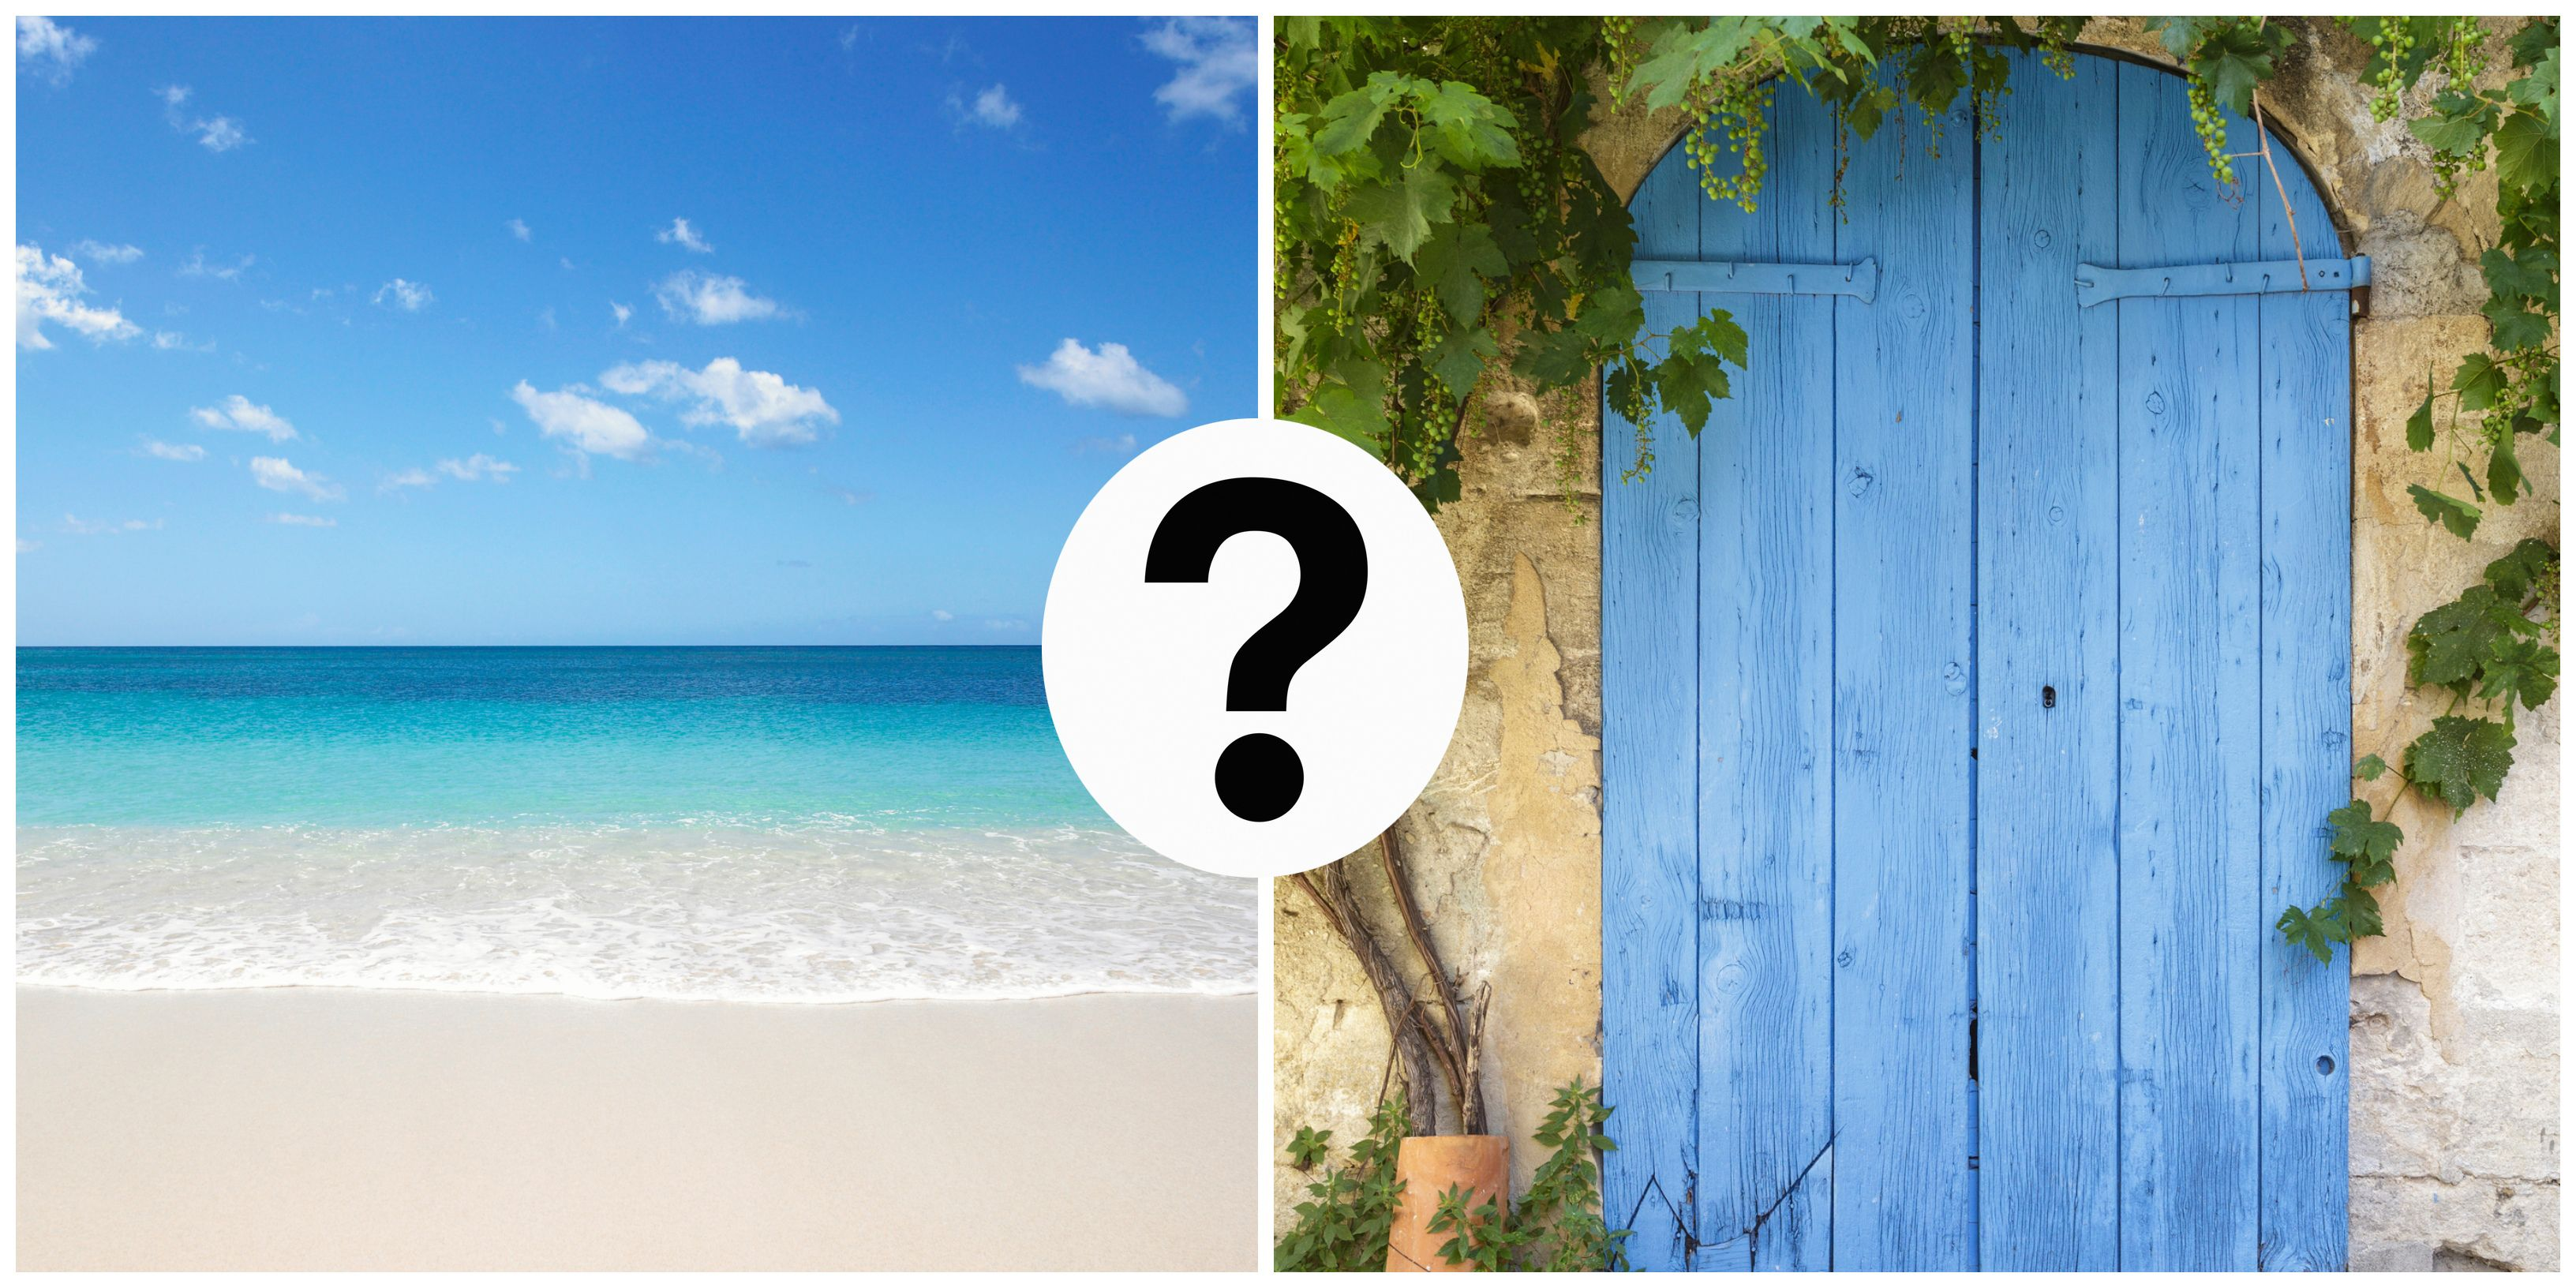 New illusion: the beach or the door 10